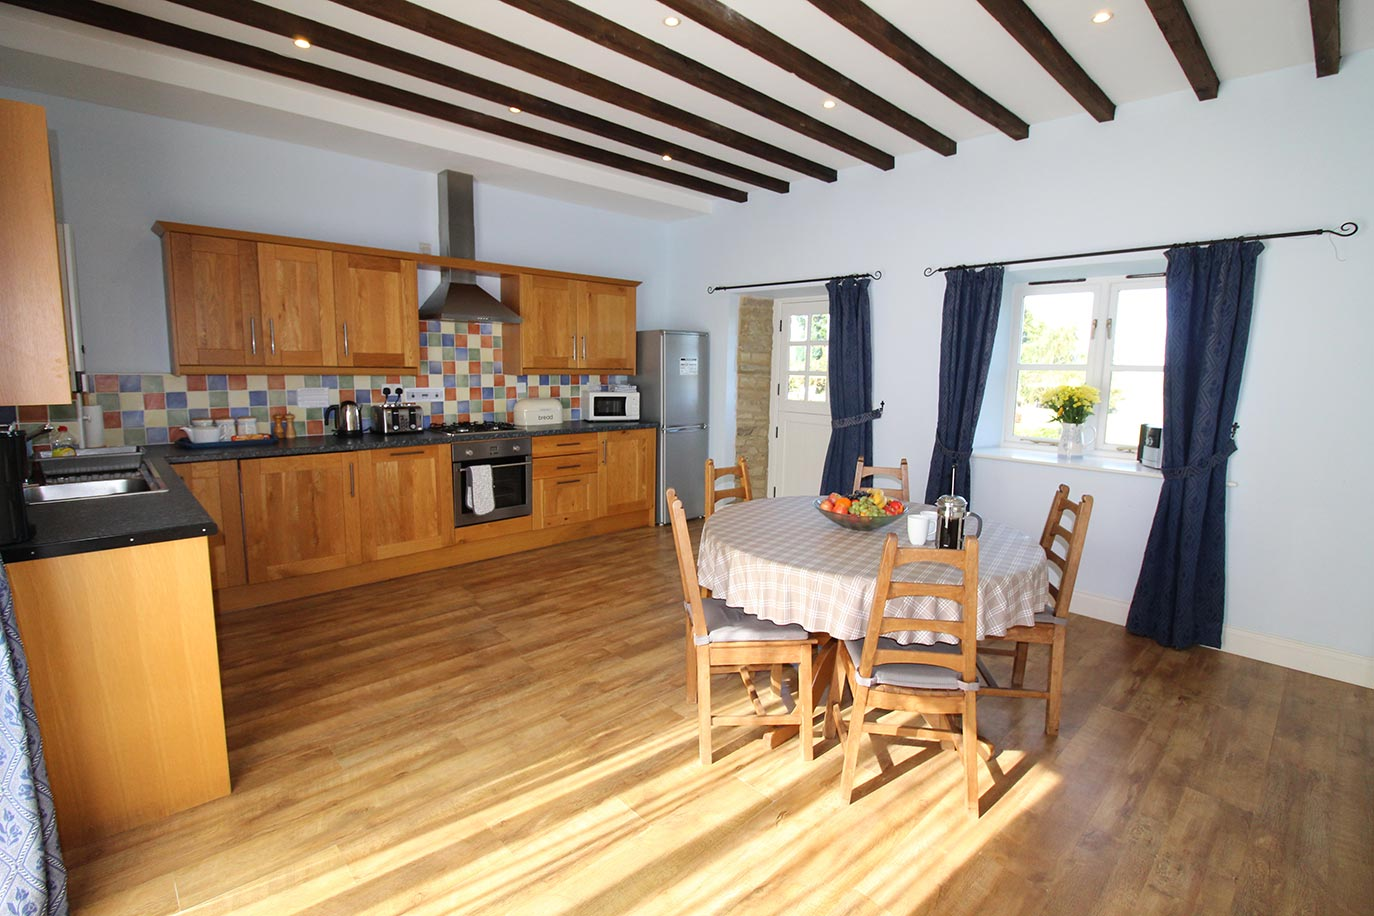 Haselor House kitchen and dining area | Burradon Farm Houses & Cottages